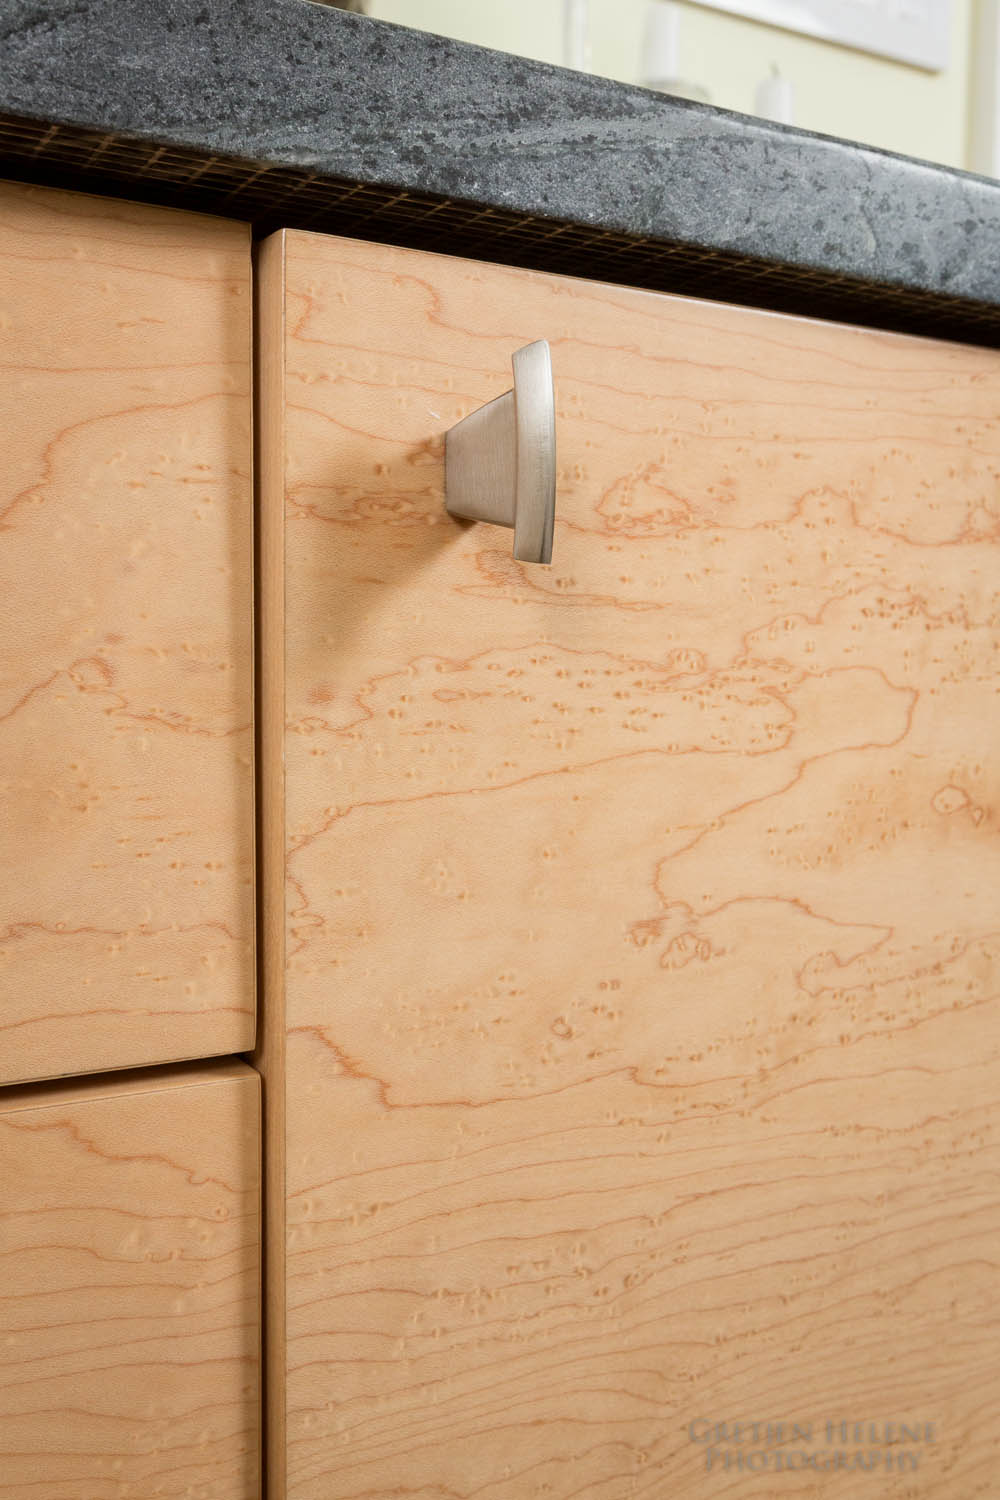 Buffet is crafted from bird's eye maple